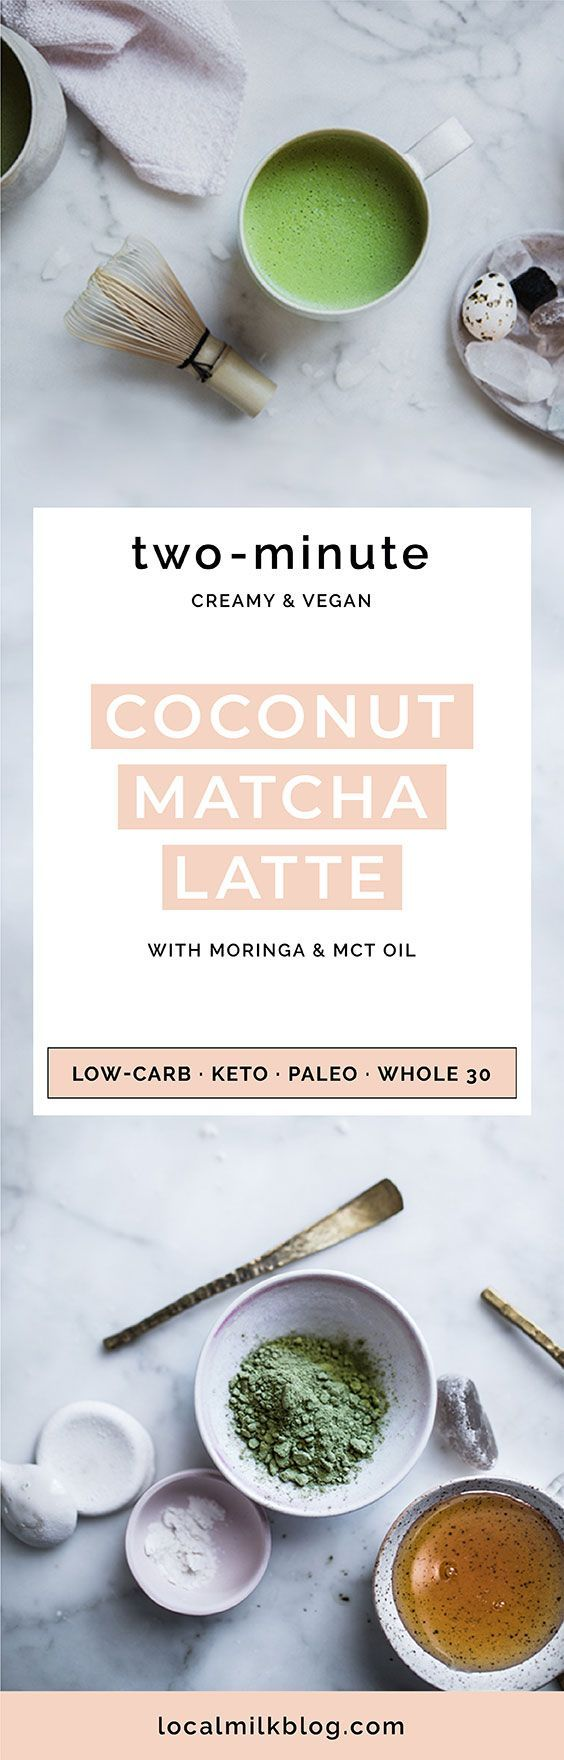 quick and easy vegan coconut matcha latte recipe made with coconut milk, the perfect, creamy herbal morning potion that's as great iced as it is hot!